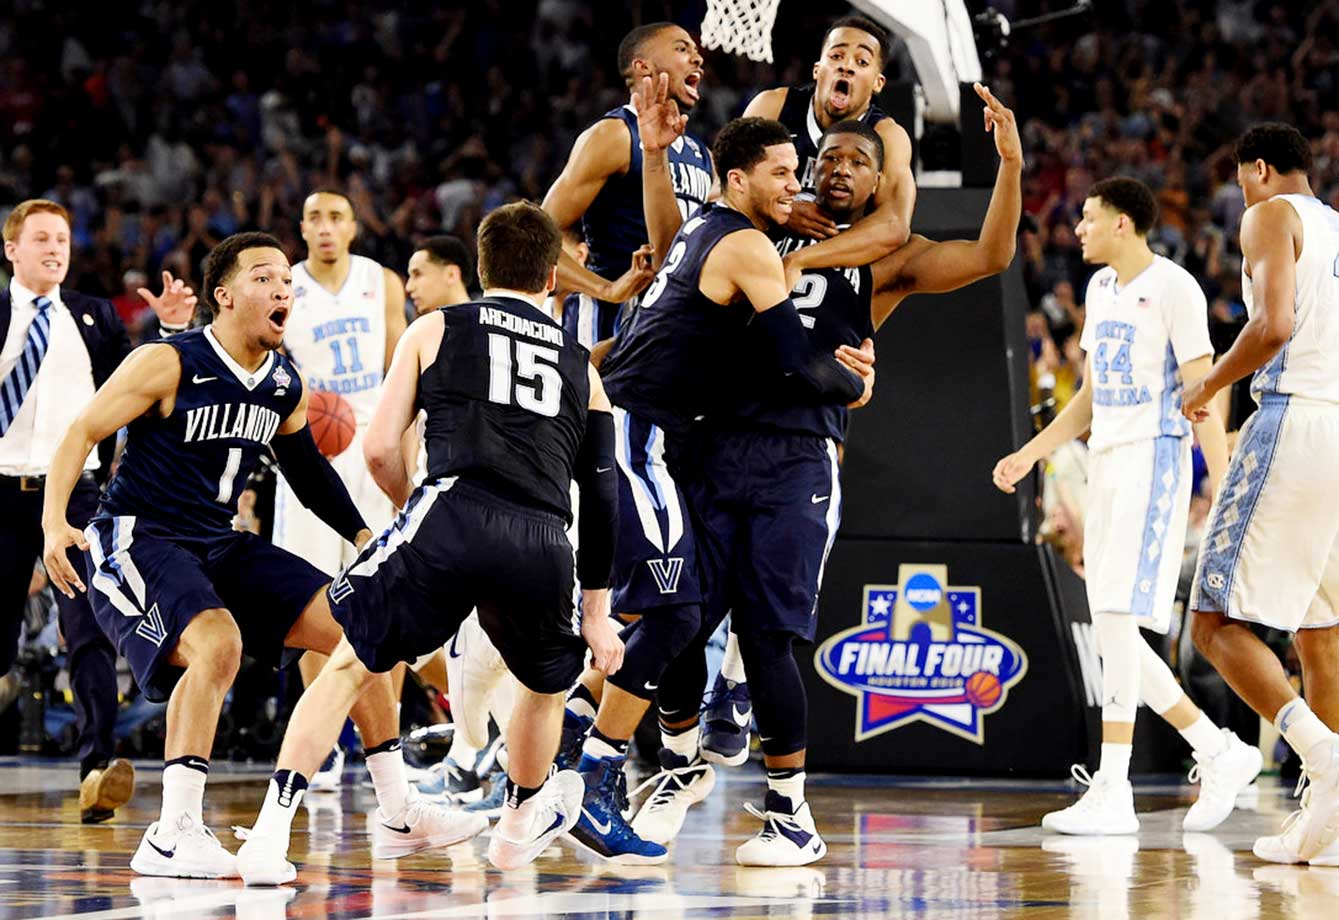 Kris Jenkins is mobbed by his Villanova teammates after his buzzer-beating three gave the Wildcats a 77-74 win over North Carolina.